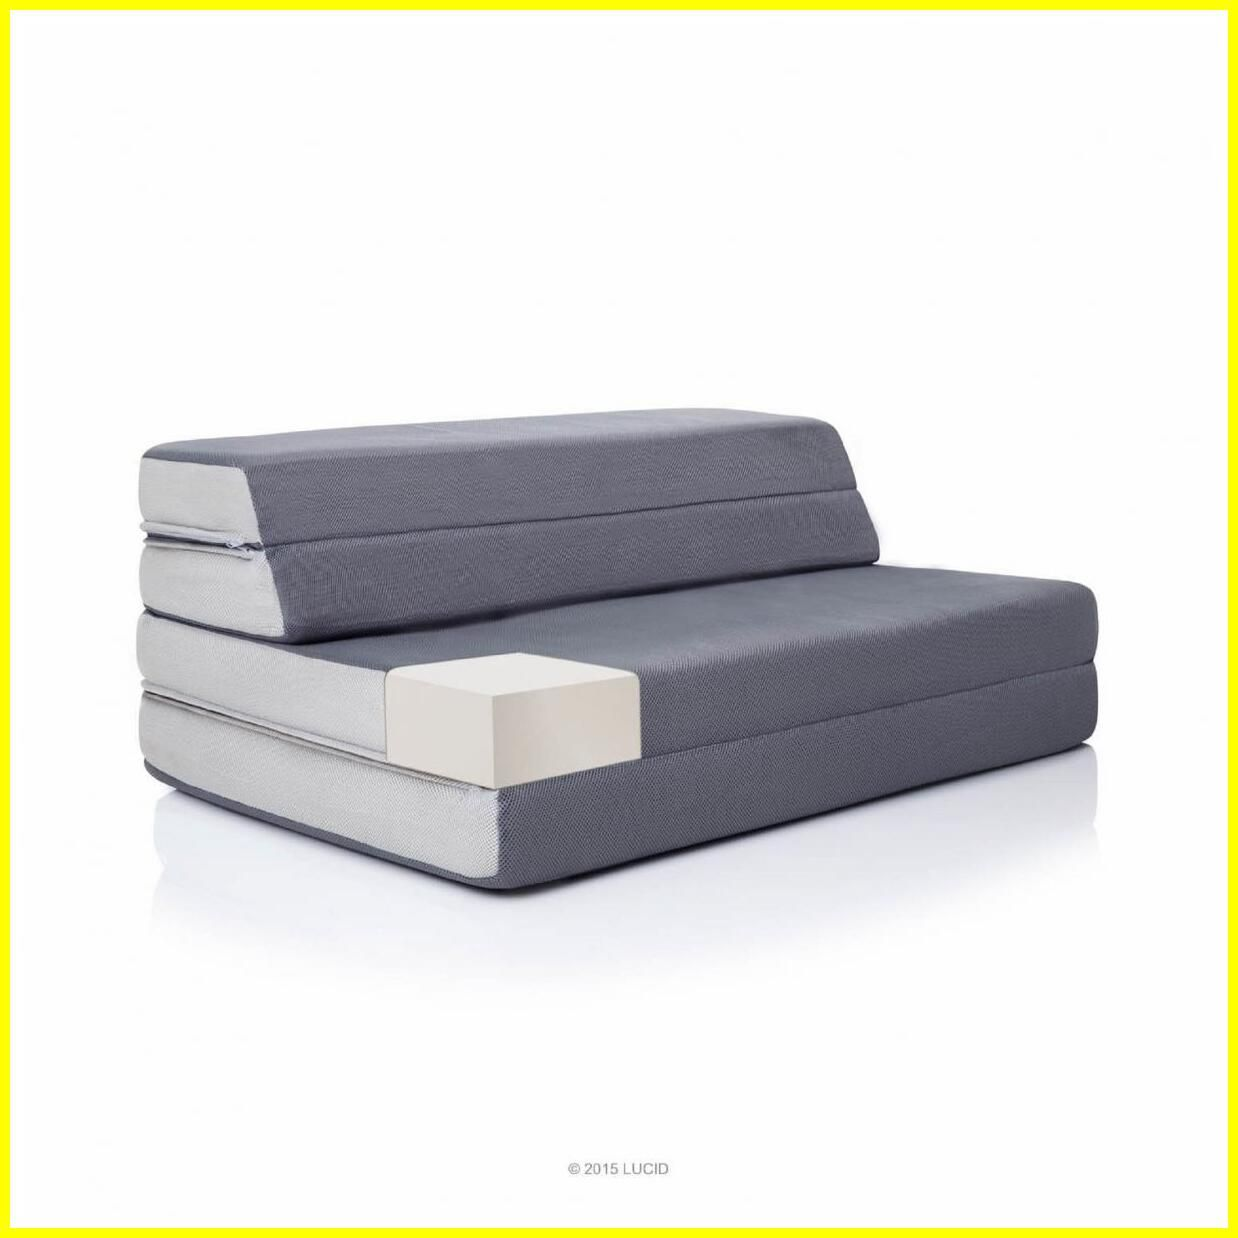 Pin On Sofa Bed Designs Pictures With Price